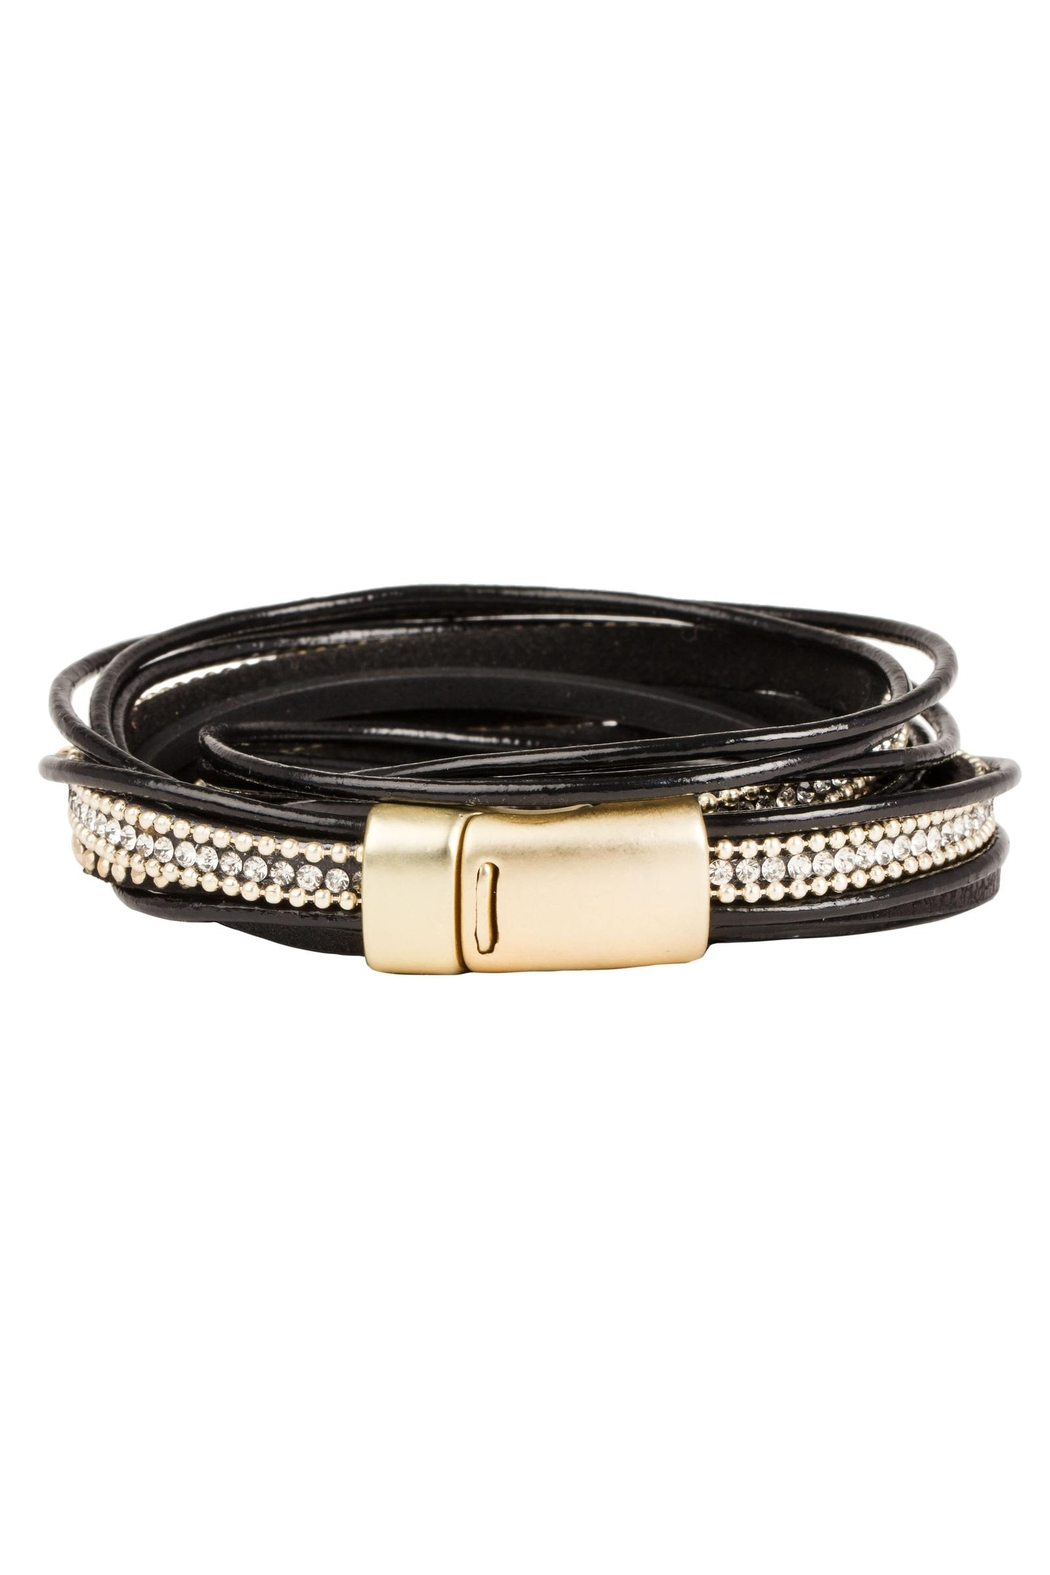 Saachi Flaunt Double Wrap Leather Bracelet - Side Cropped Image